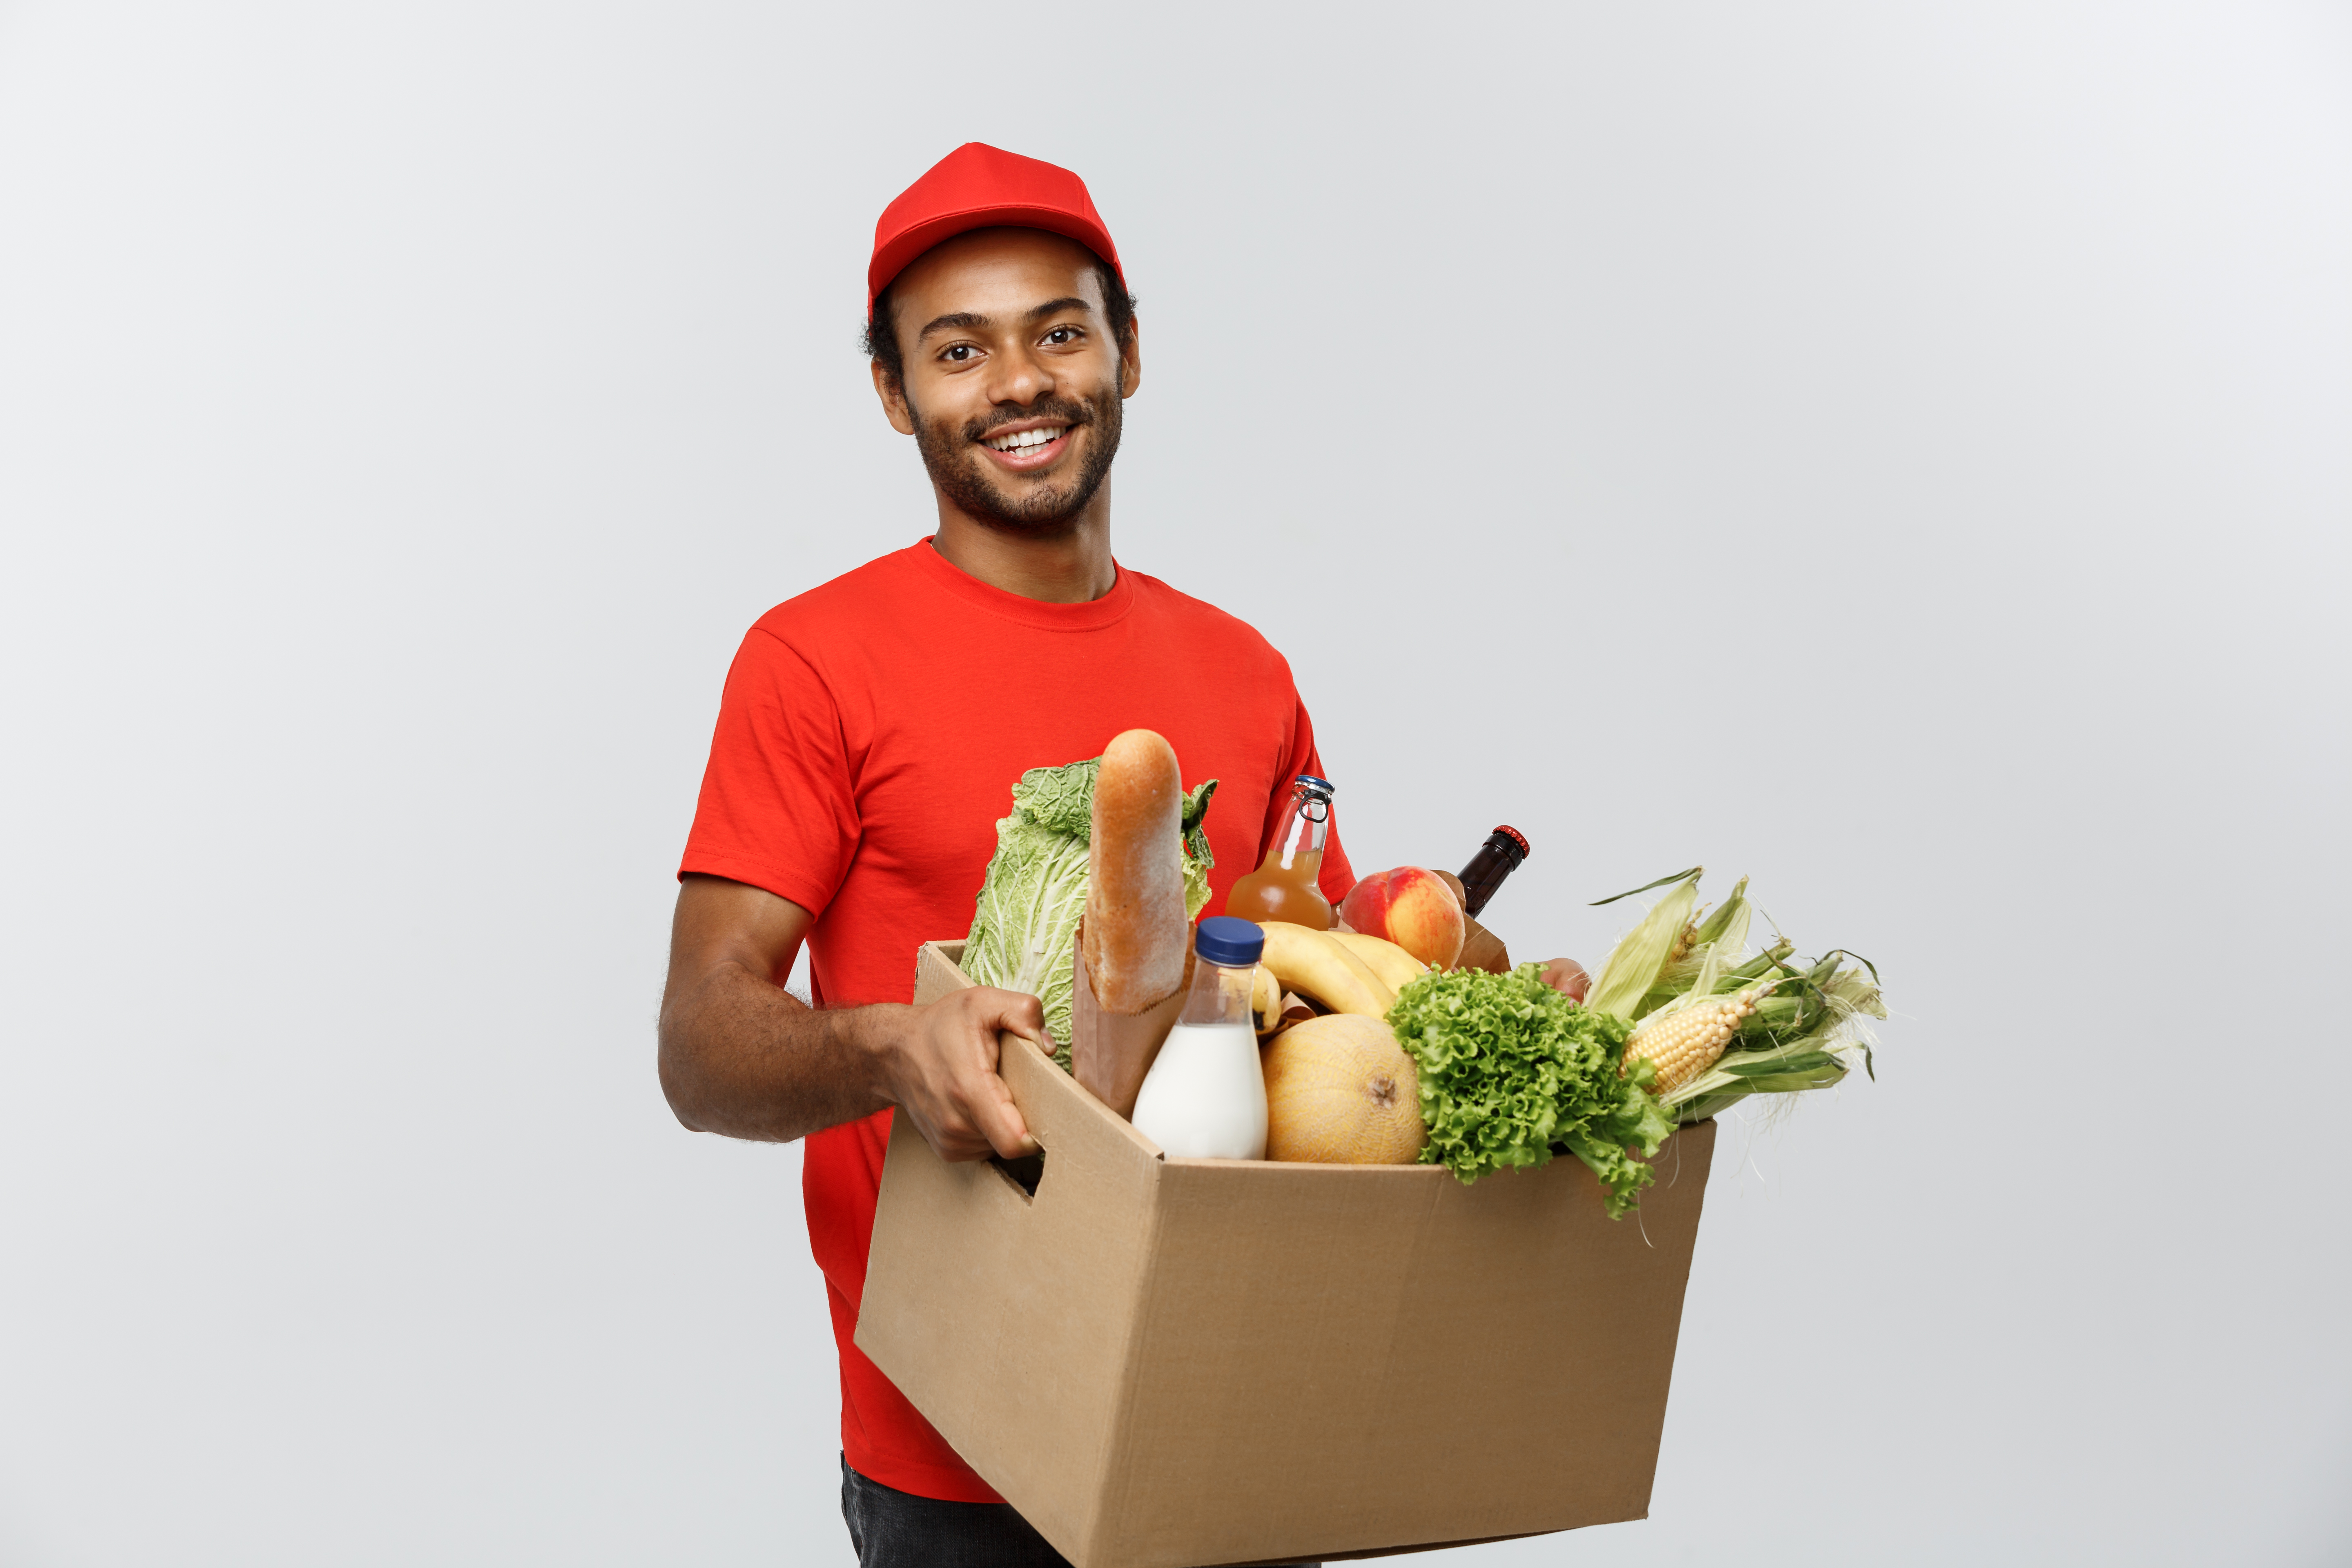 Delivery Companies Gear Up To Compete Across Retail Markets